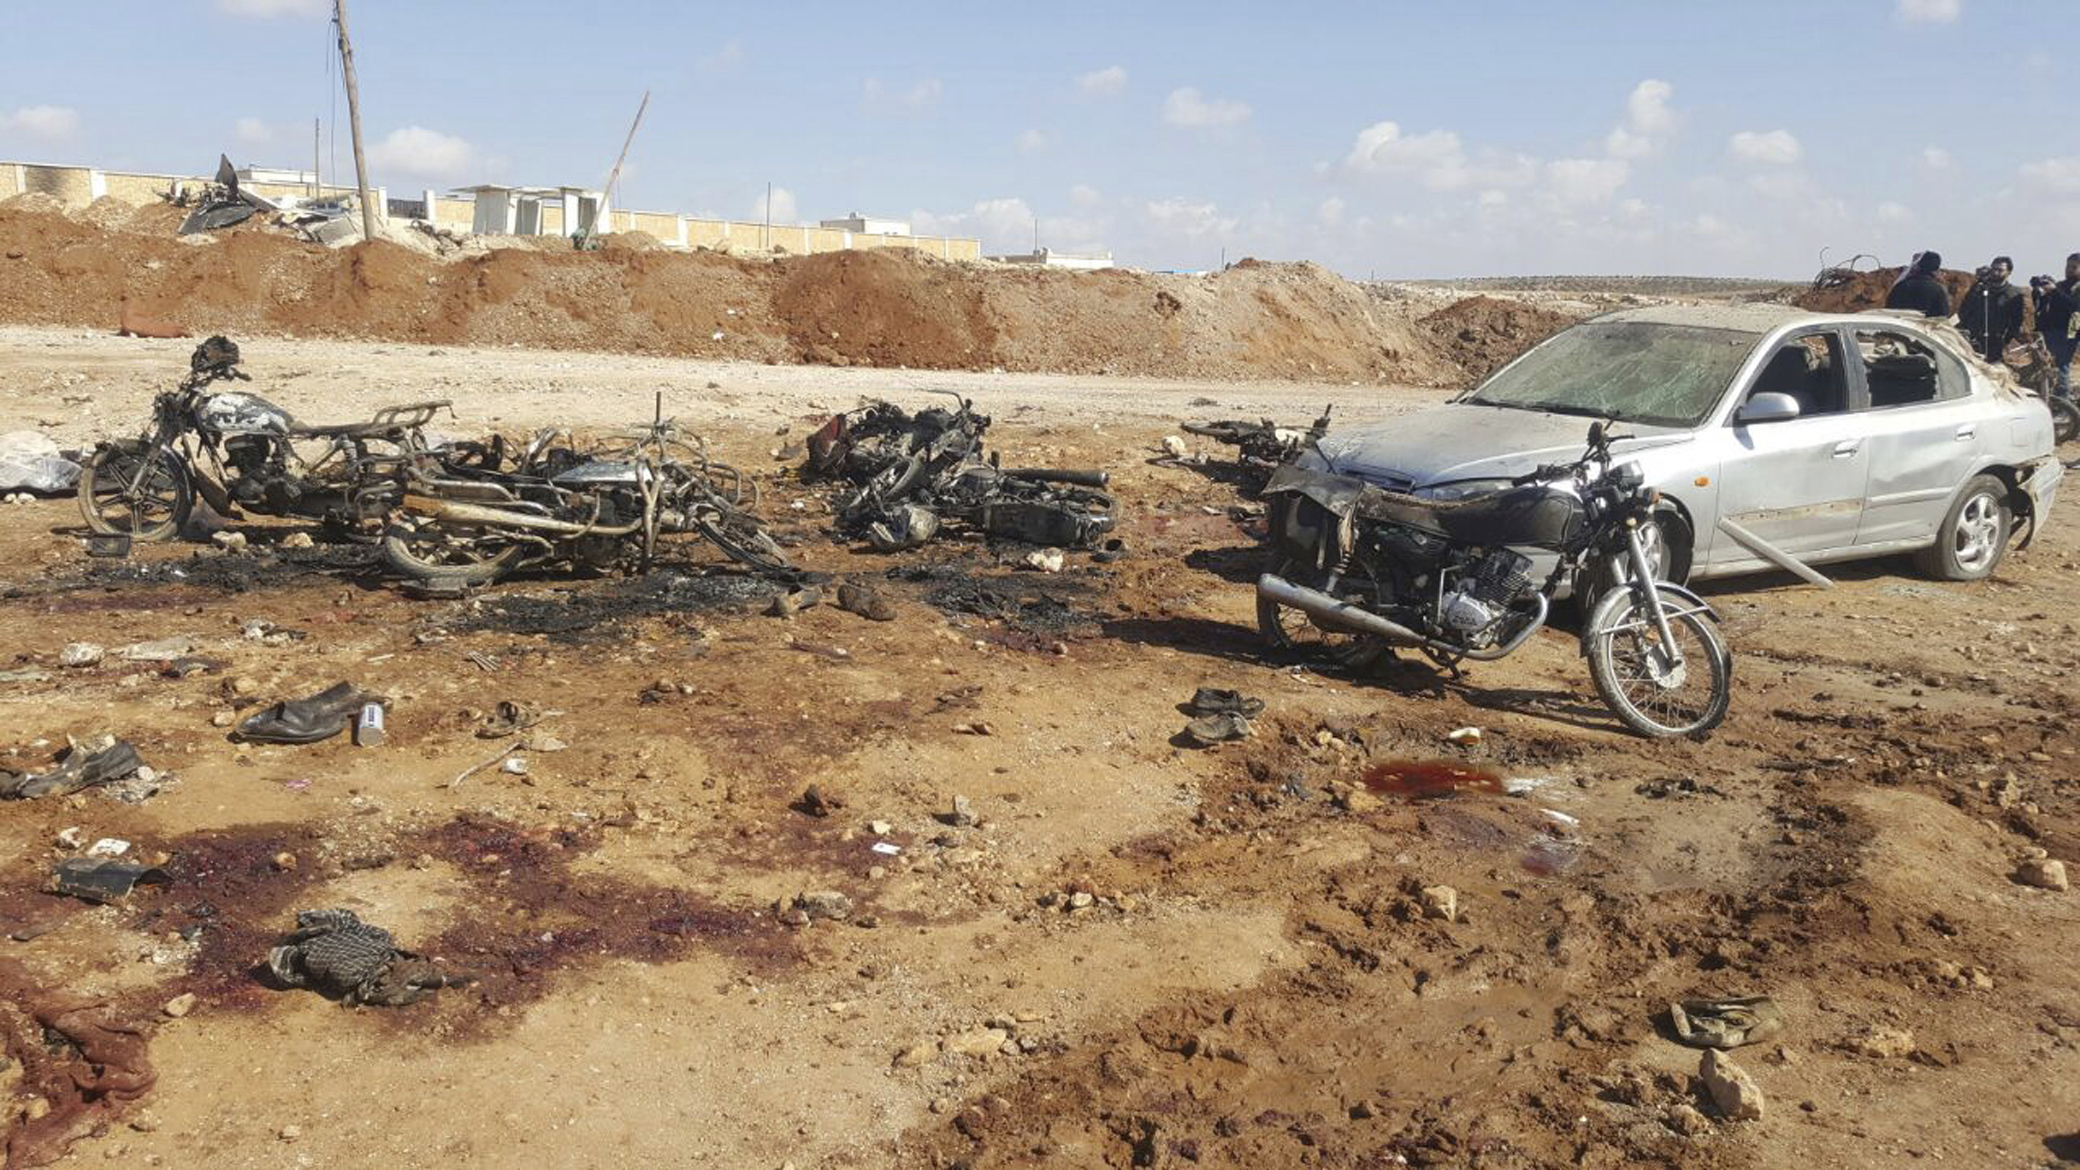 Burned motorcycles and car damaged after a suicide attacker blew his small pick-up truck outside a security office in Sousian village, about 8 kilometers (5 miles) north of al-Bab, Syria on Feb. 24, 2017. (Thiqa News Agency, via AP)